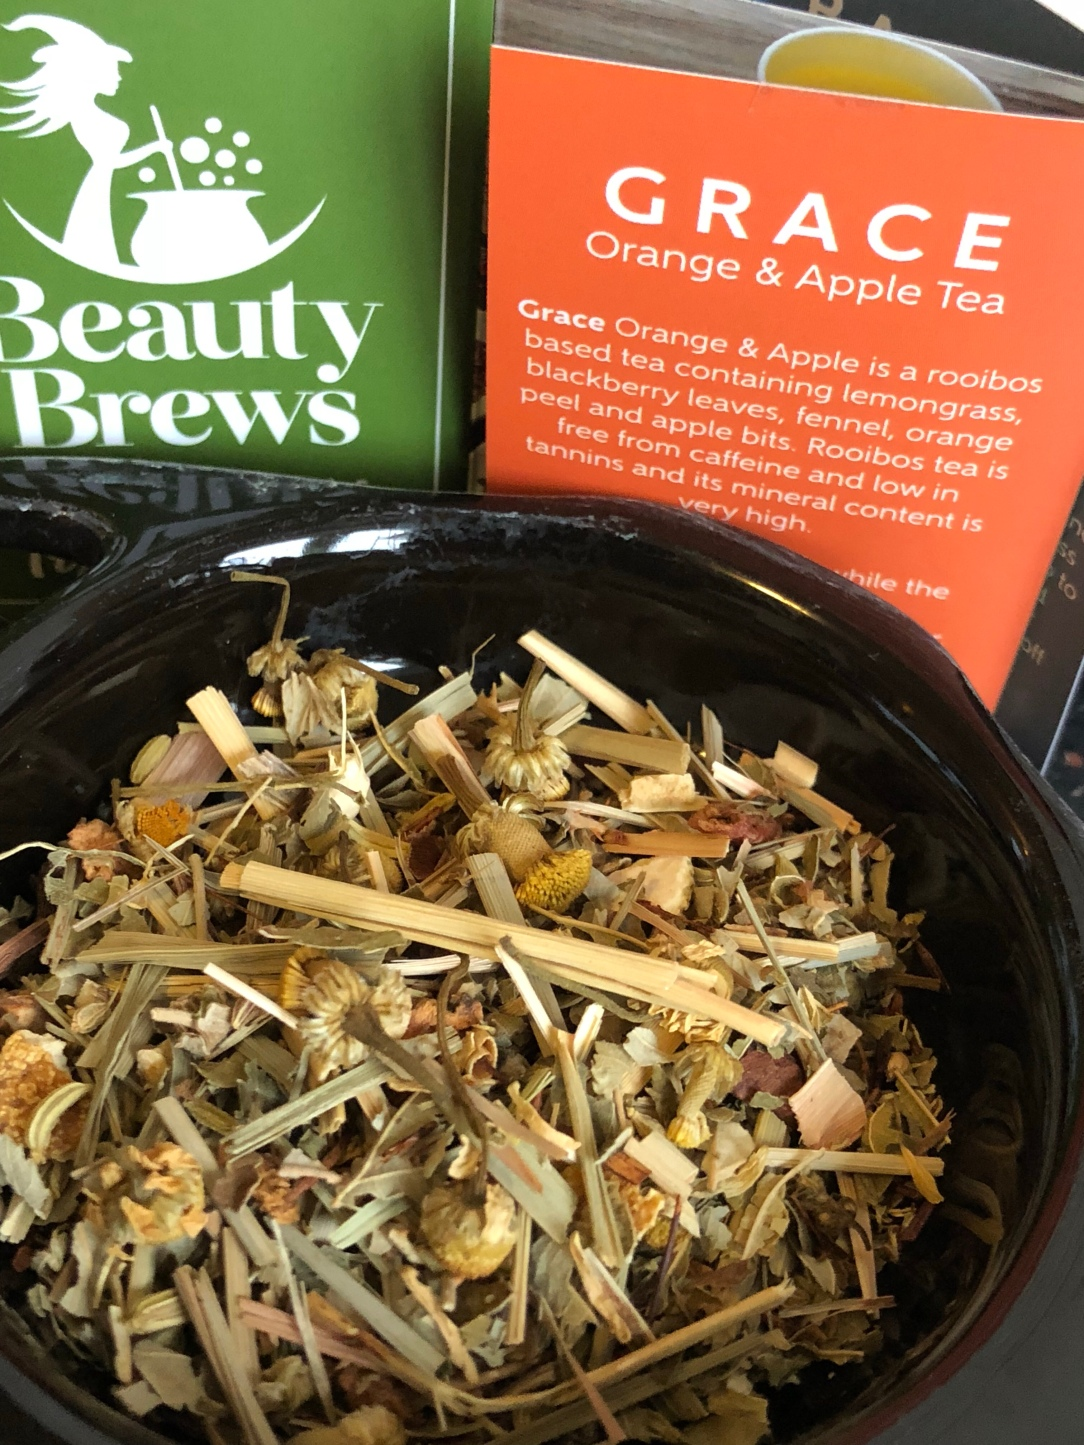 Beauty brews organic tea Grace - orange & apple tea